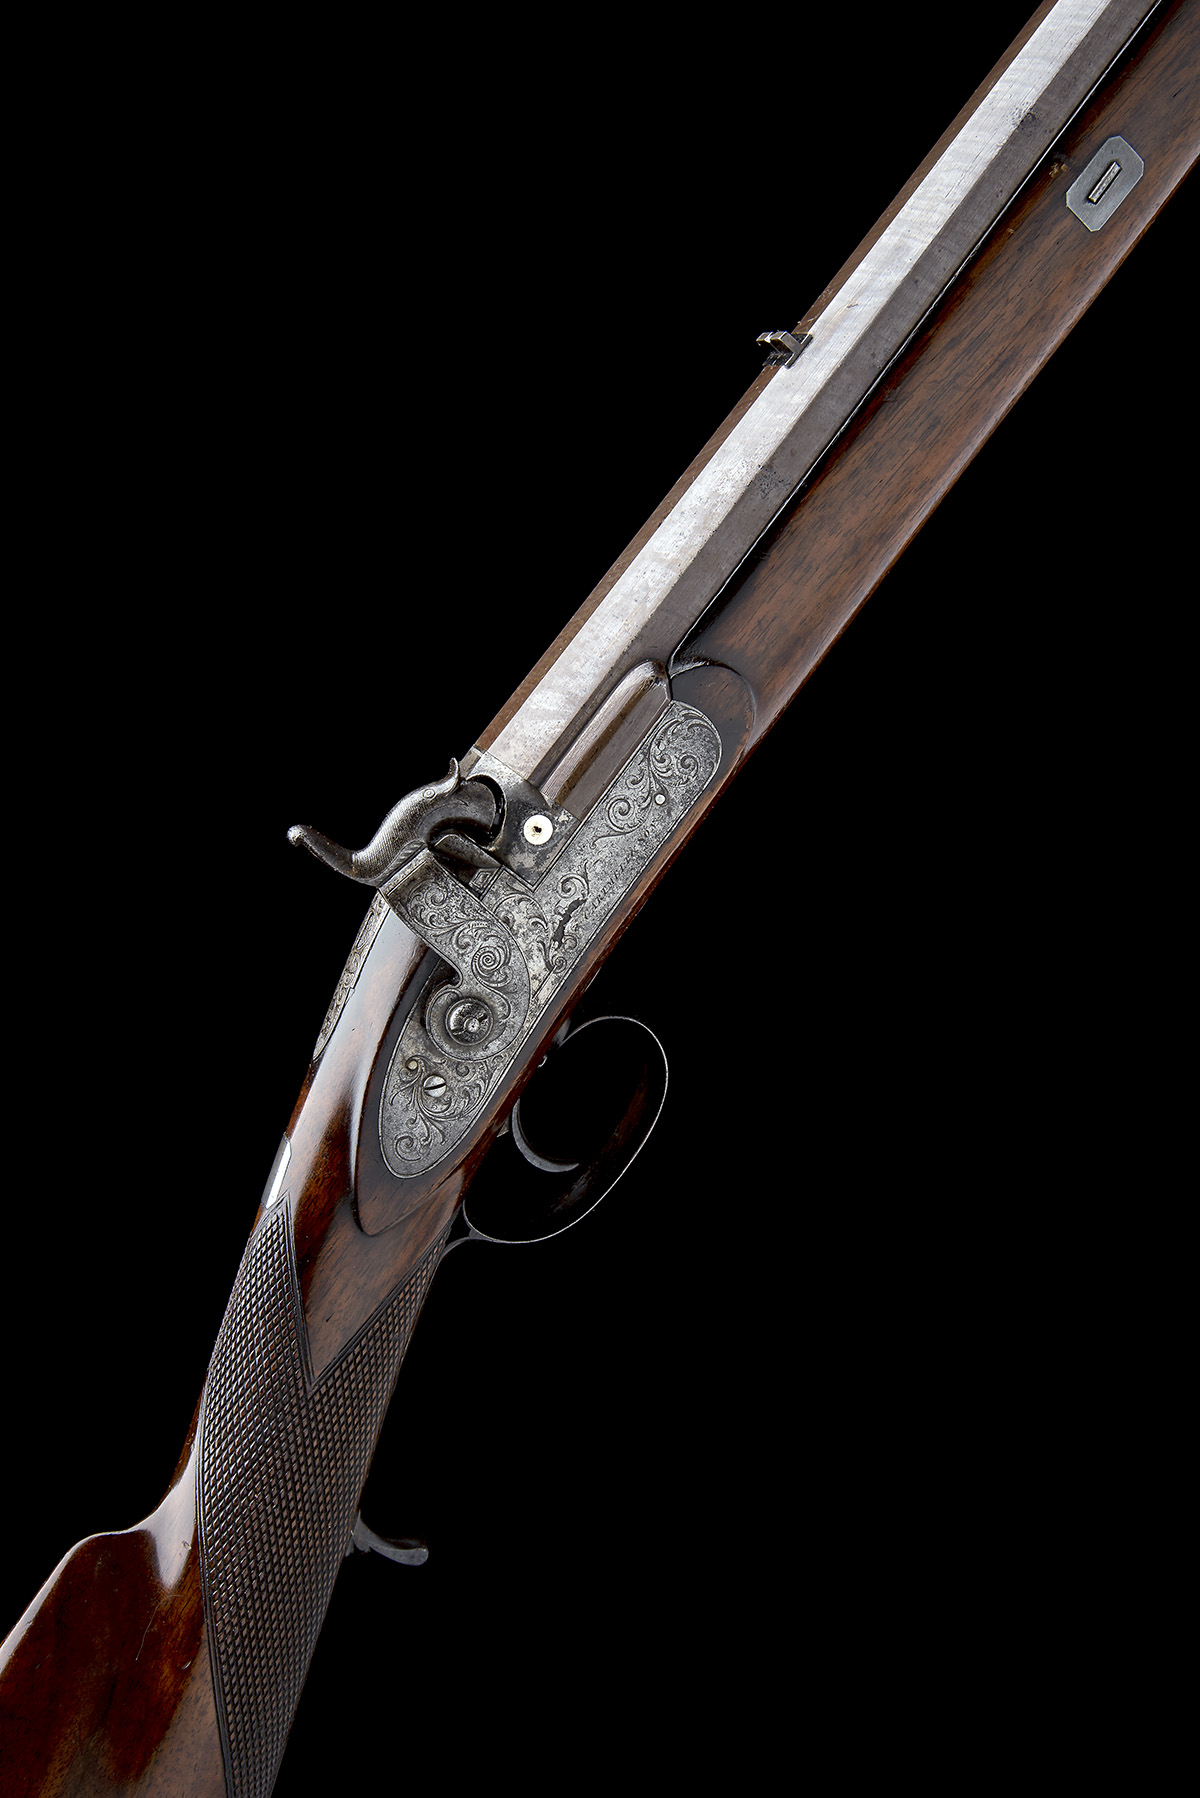 CARTMELL & SON, DONCASTER A GOOD 16-BORE PERCUSSION SINGLE-BARRELLED SPORTING-RIFLE, serial no.